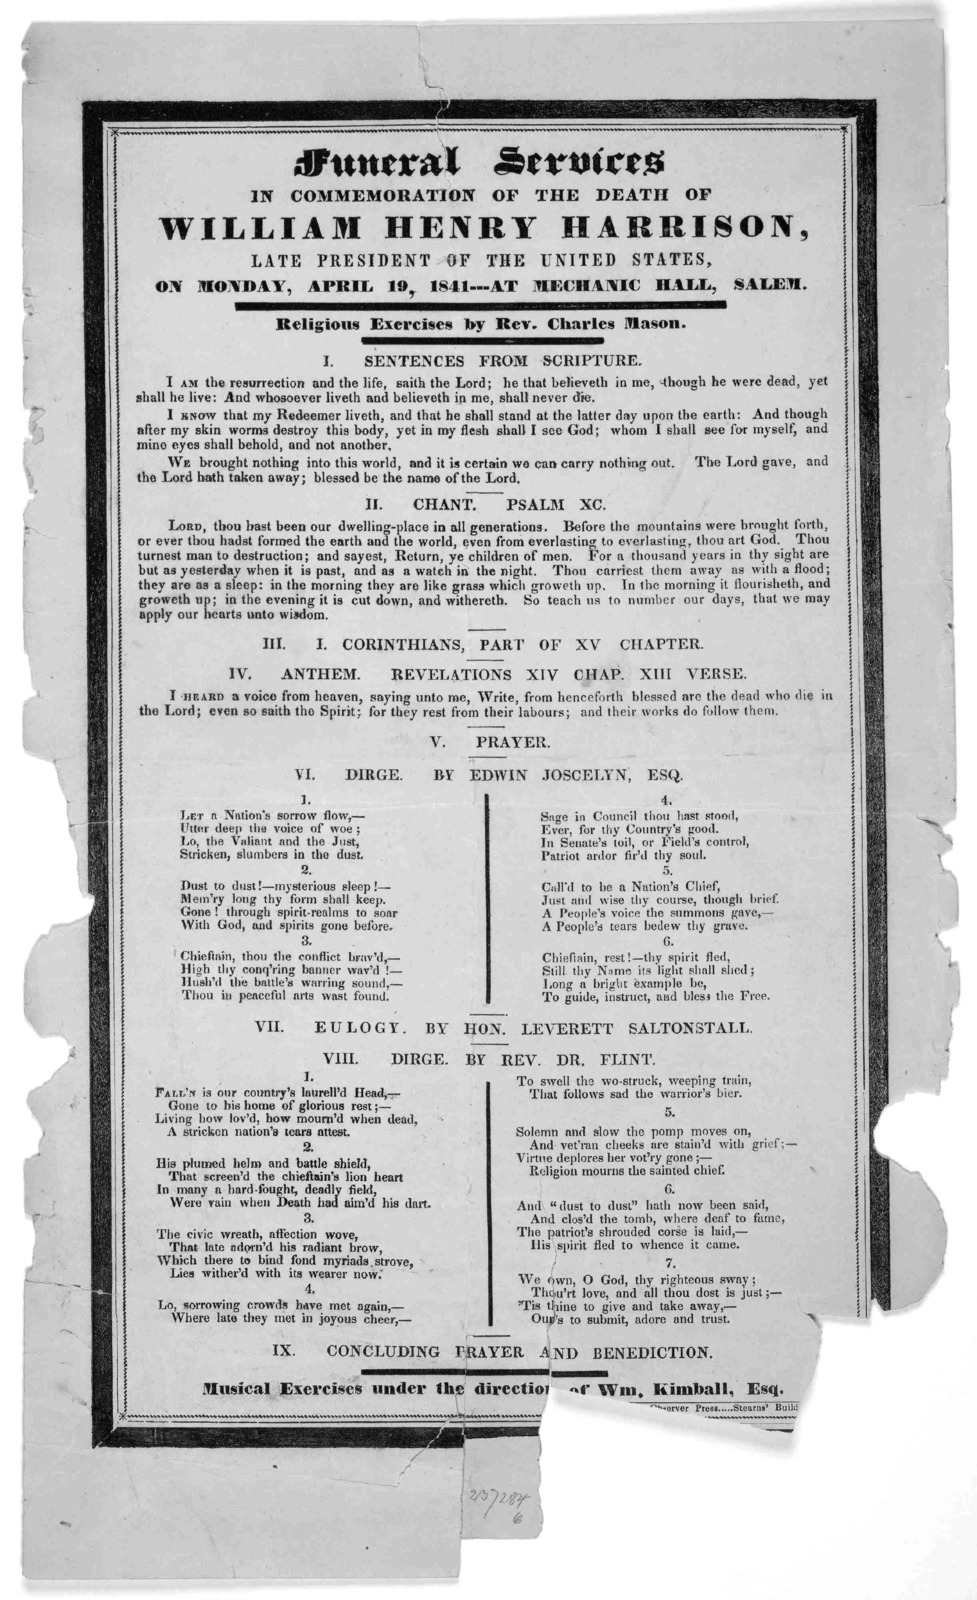 Funeral services in commemoration of the death of William Henry Harrison, late president of the United States, on Monday, April 19, 1841--- at Mechanic Hall, Salem. Religious exercises by Rev. Charles Mason ... Salem. Observer Press [1841].